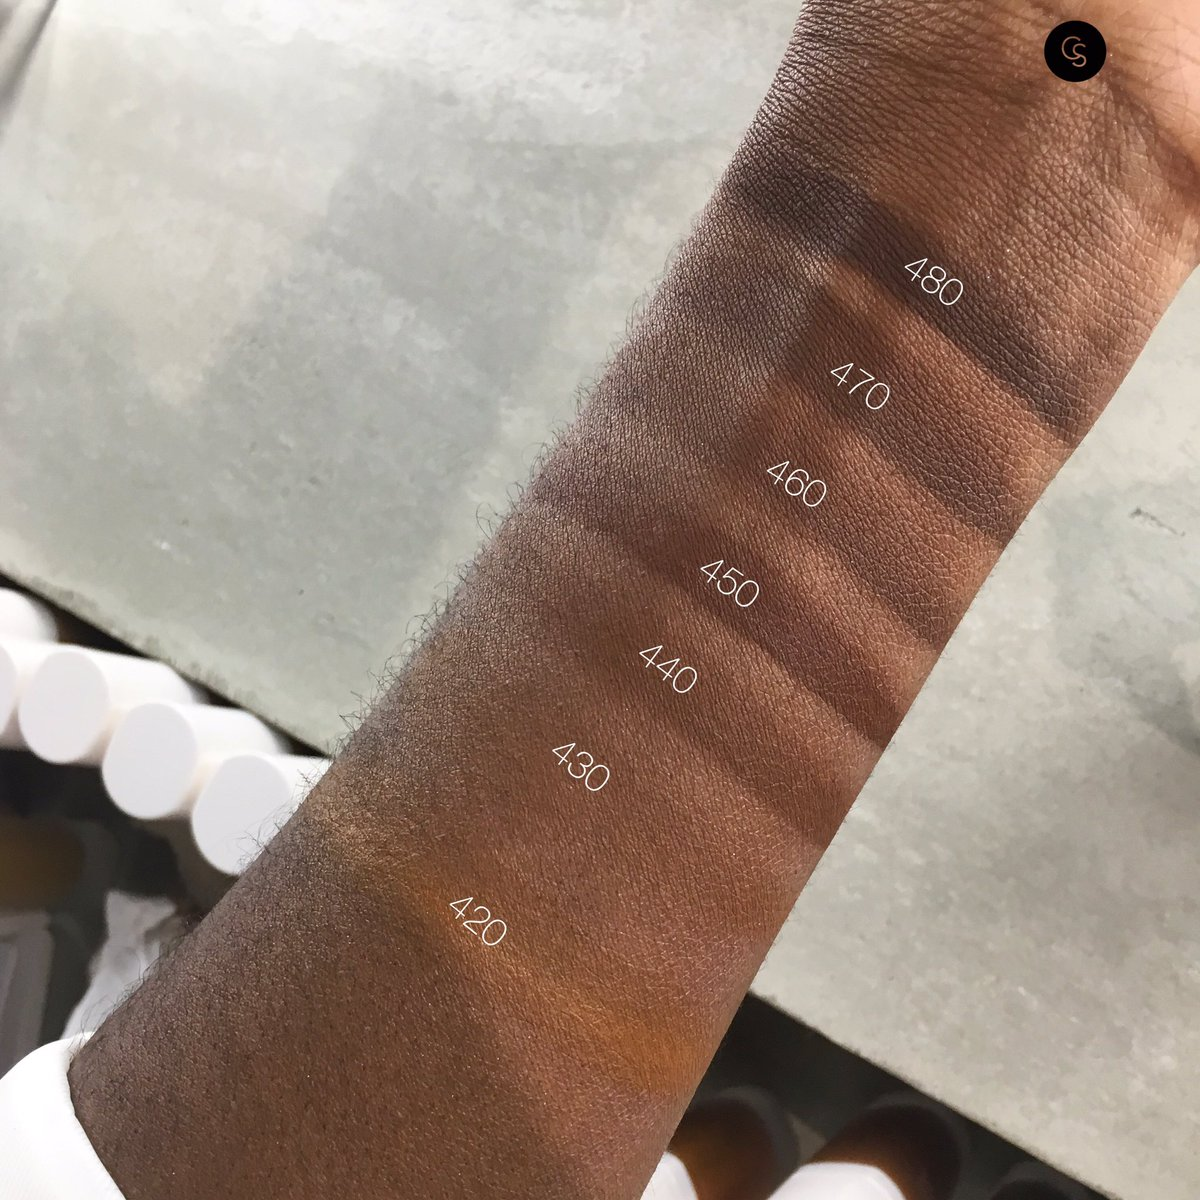 Cocoaswatches On Twitter Quick Dirty Swatches Of Fentybeauty Foundation Look At That Shade Range Https T Co G1krqcbi2k